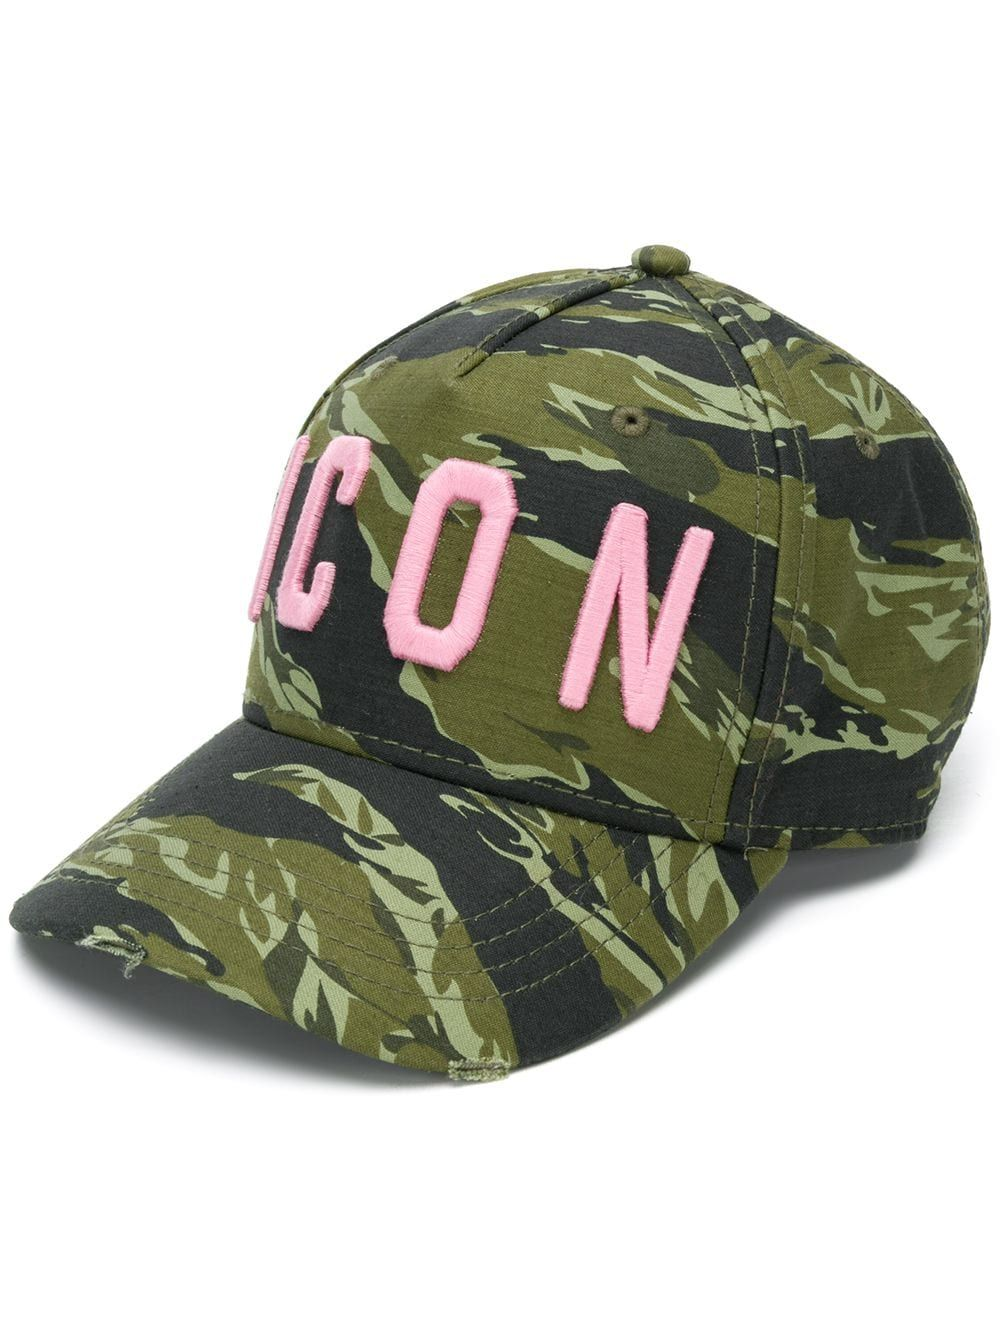 36ea18a12 Dsquared2 camouflage cap - Green | Products in 2019 | Women ...